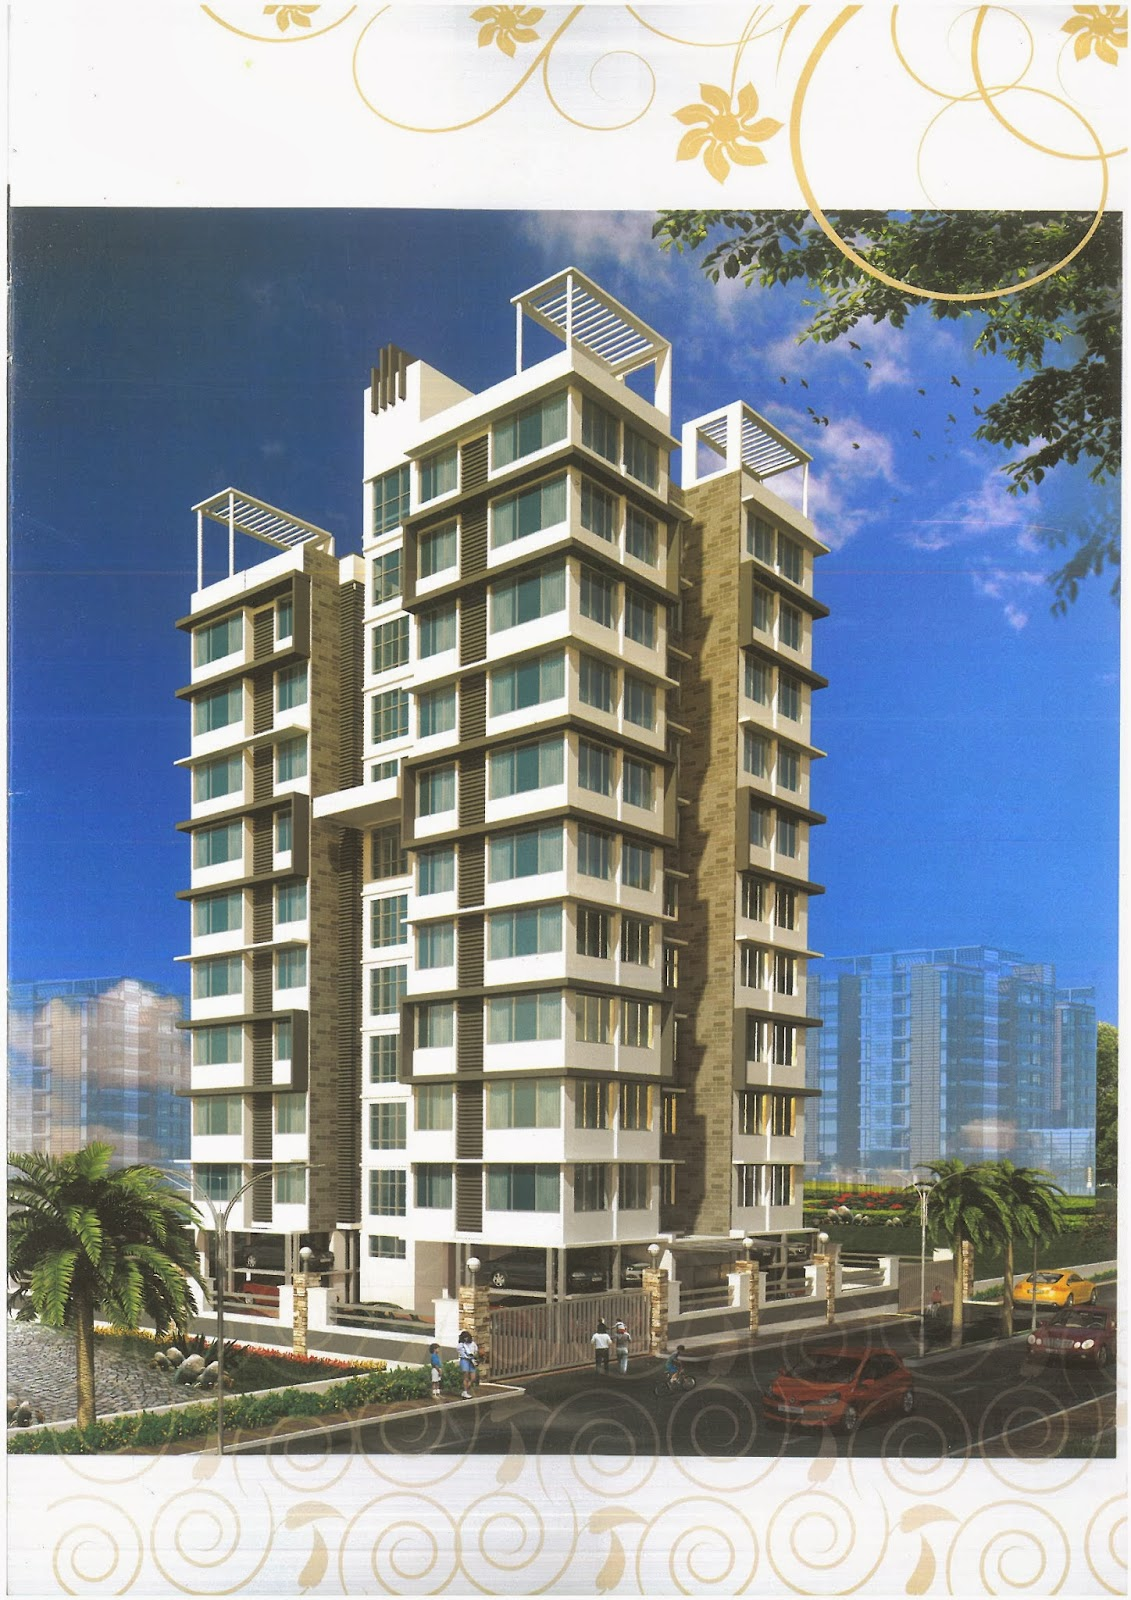 543a536f0a6 2 BHK FLATS FOR SALE AT JOGESHWARI EAST (Under Construction ...